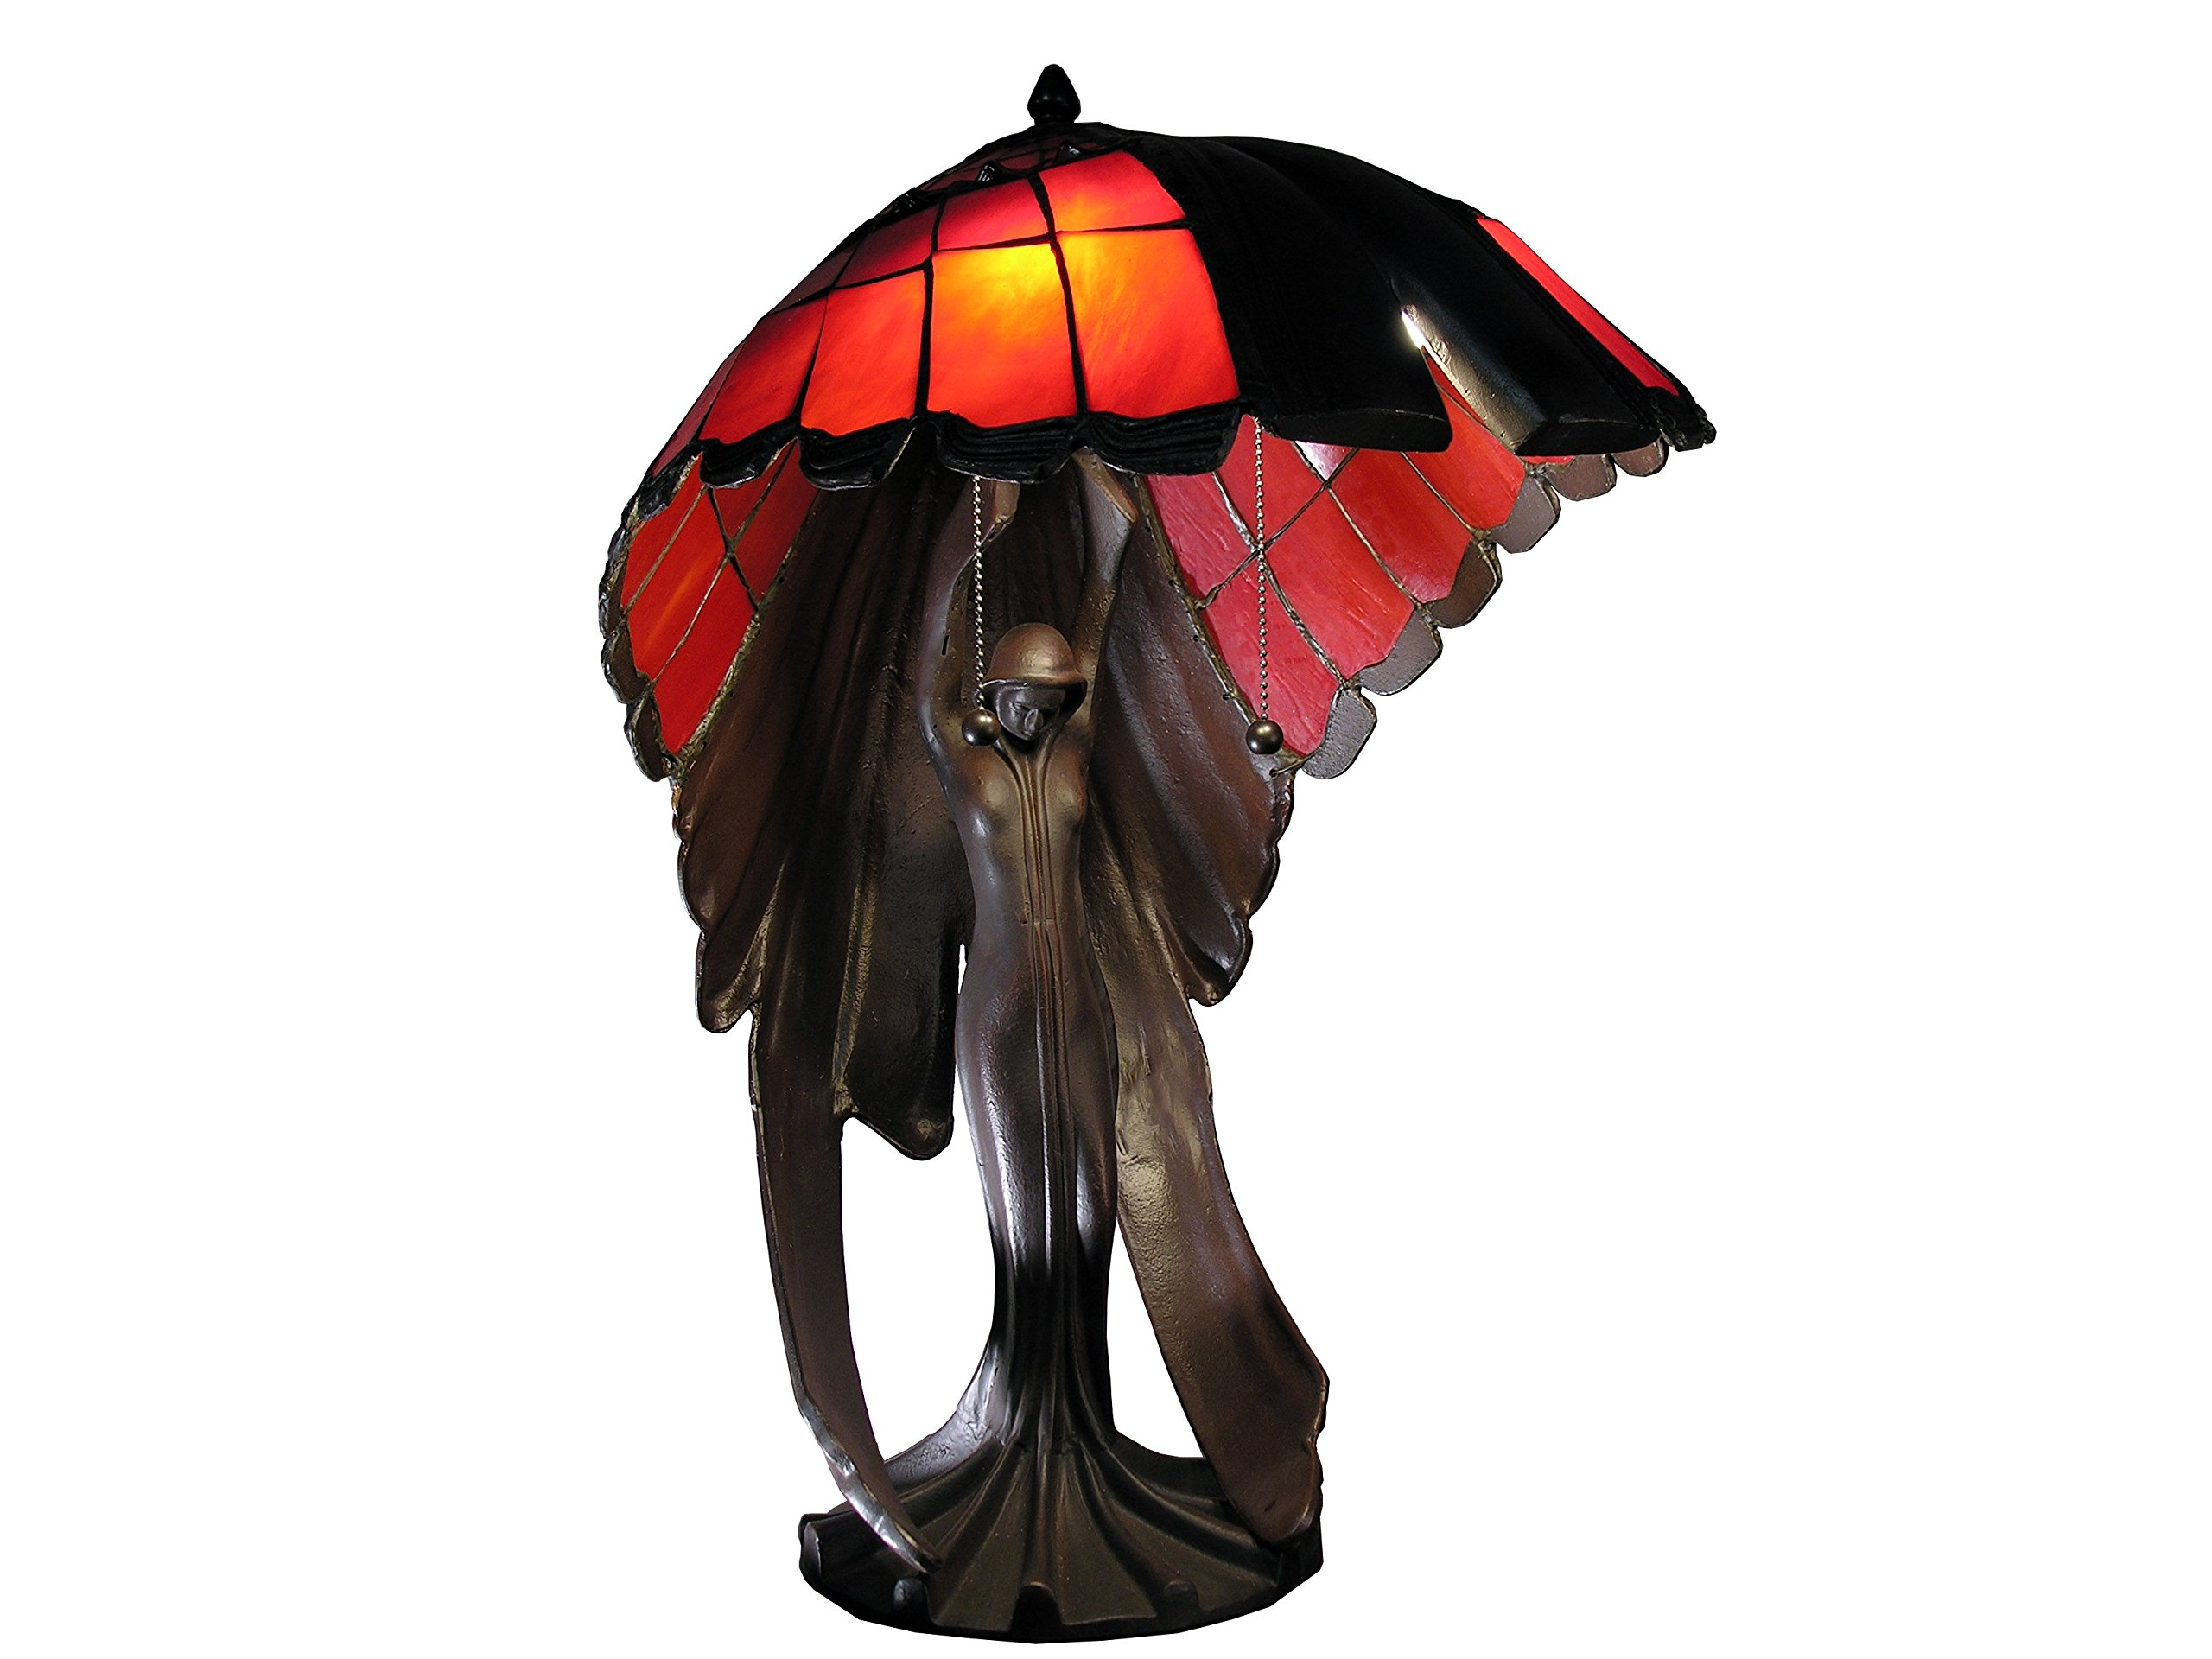 Whse of Tiffany TF191625IR Karlie Flying Lady Red 2-Light Tiffany-Style Table Lamp by Whse of Tiffany